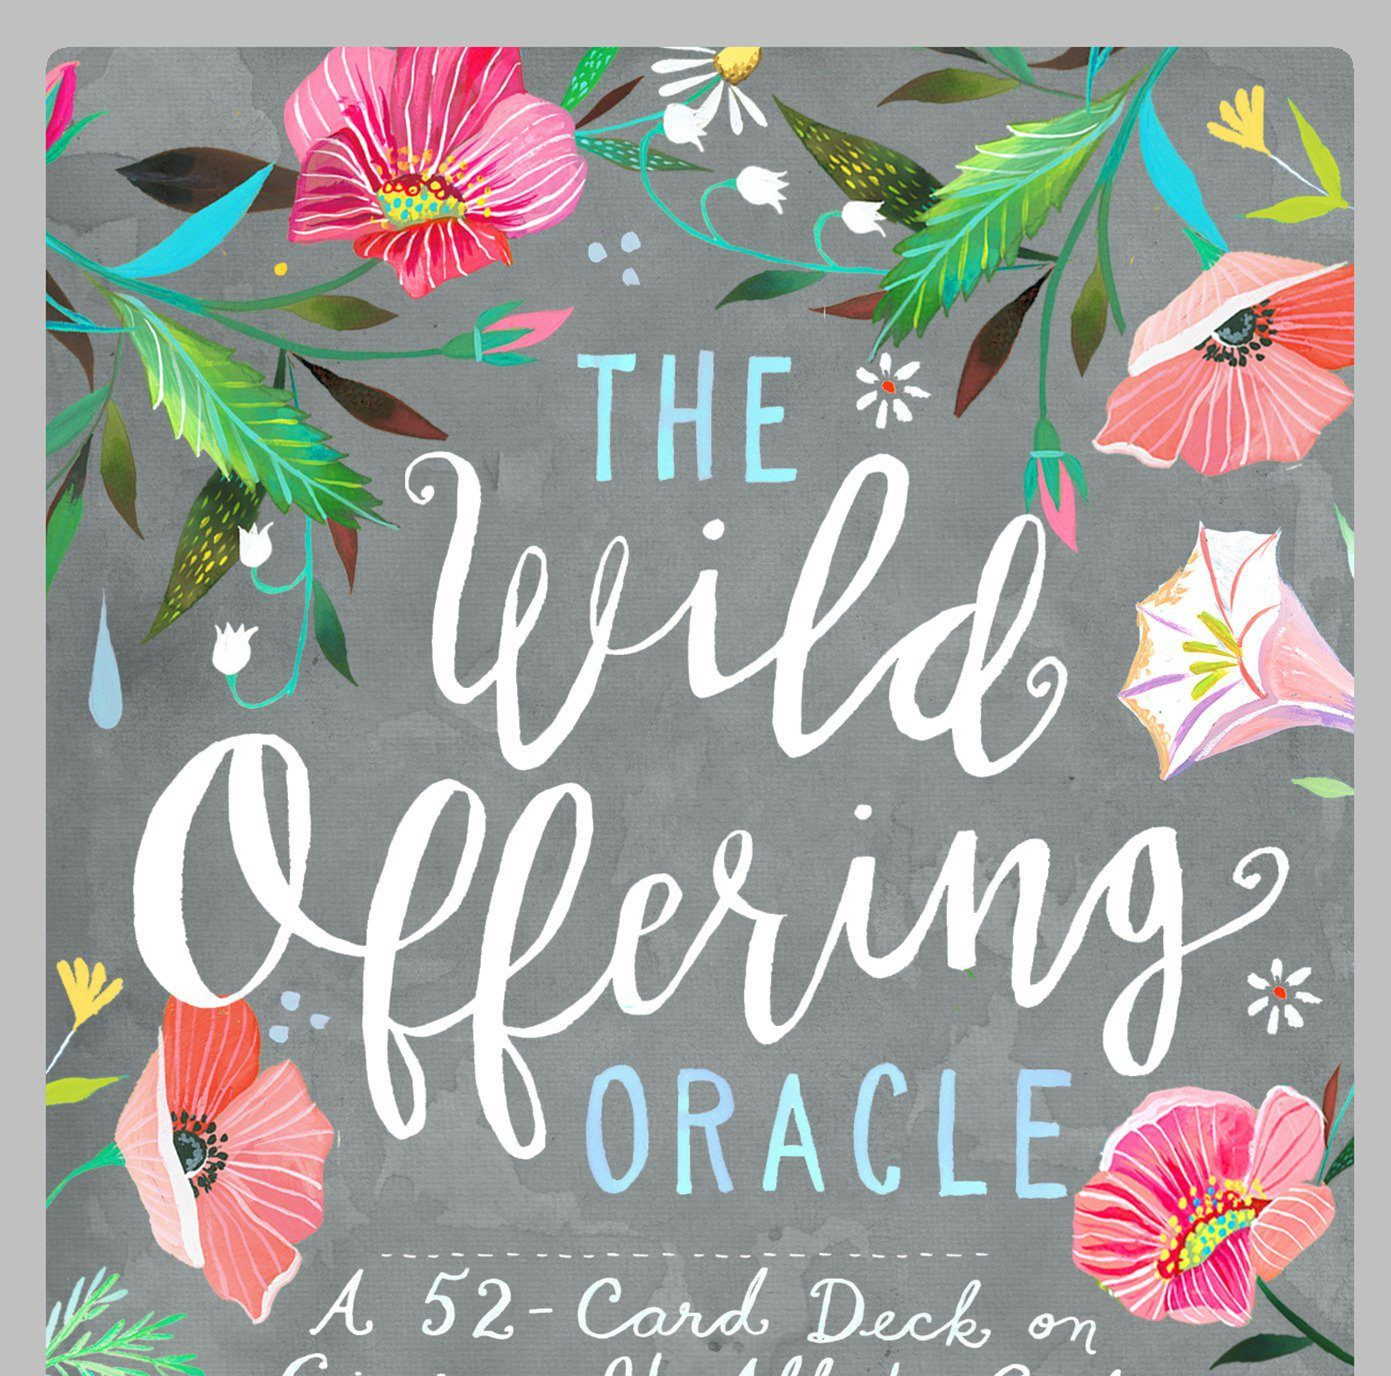 Wild Offering Oracle Cards